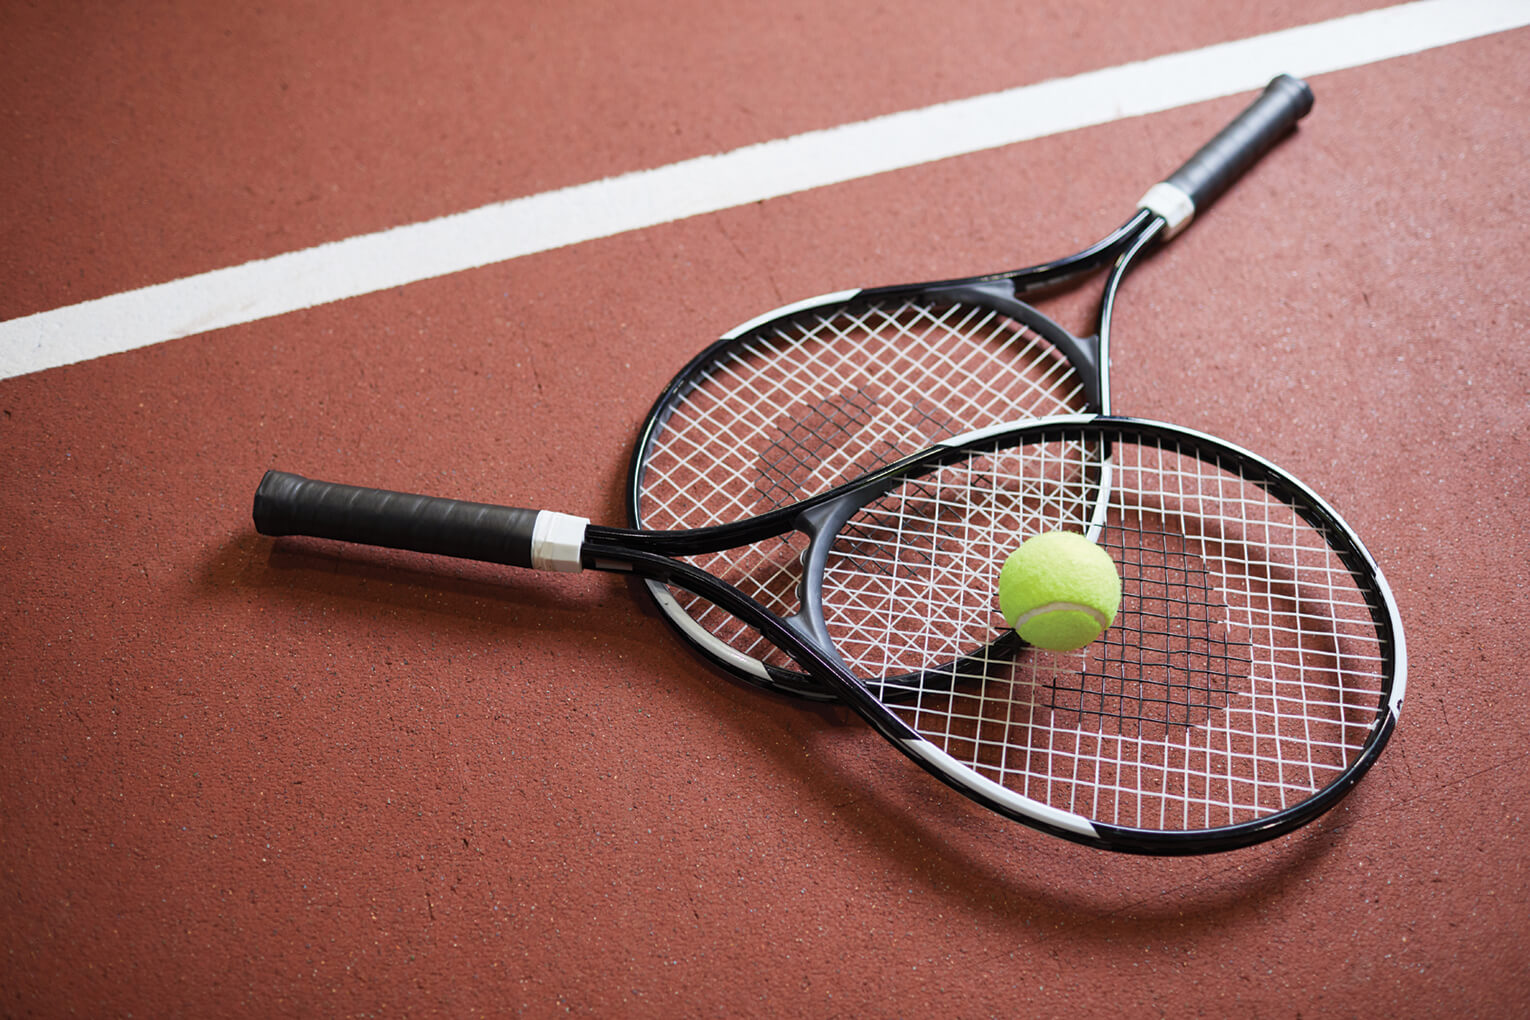 Pakistan issues visas to Indian team for tennis championship